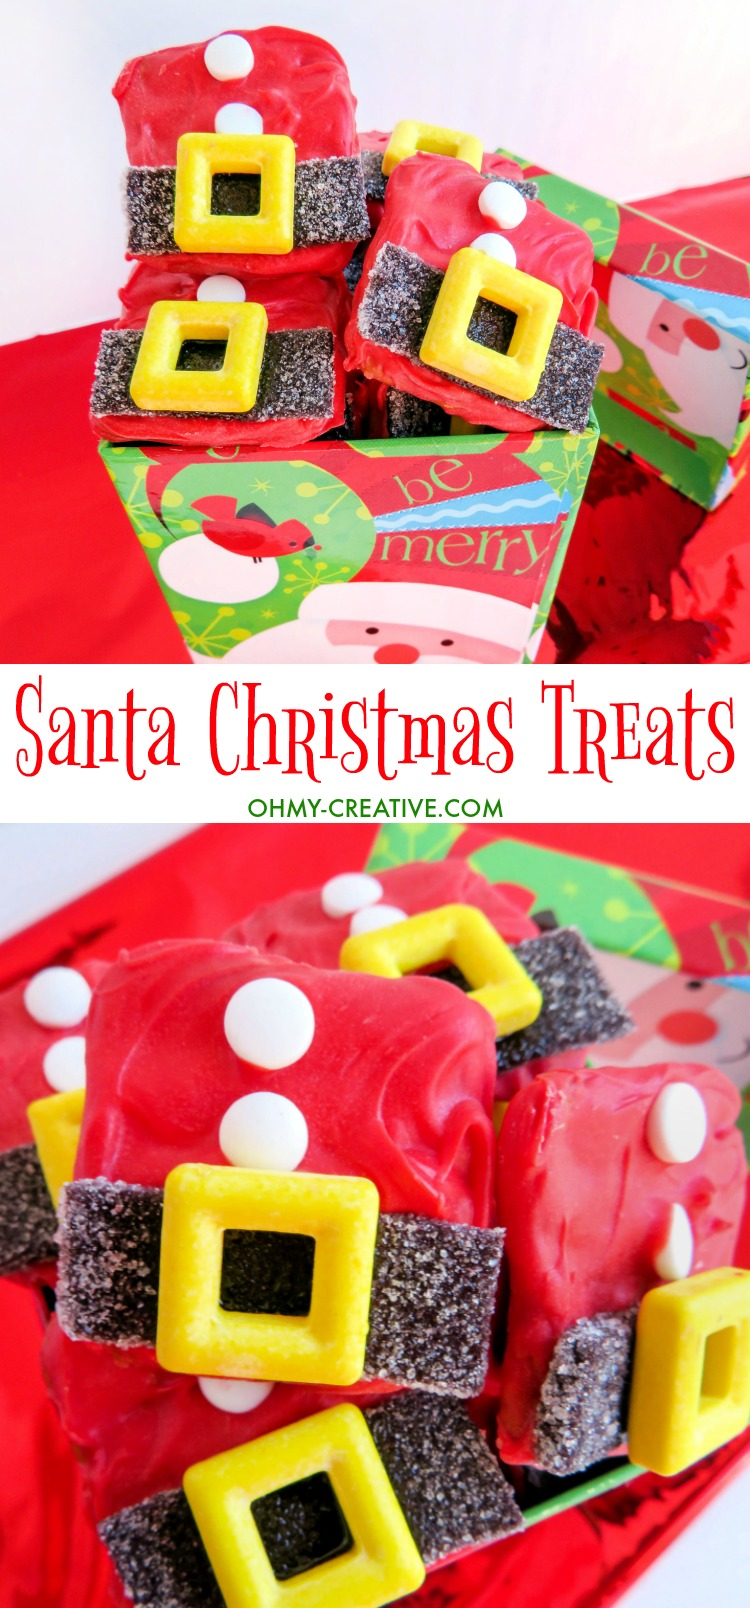 These Santa Suit Christmas Treats are perfect for holiday parties - tasty chocolate pretzel bites! | OHMY-CREATIVE.COM